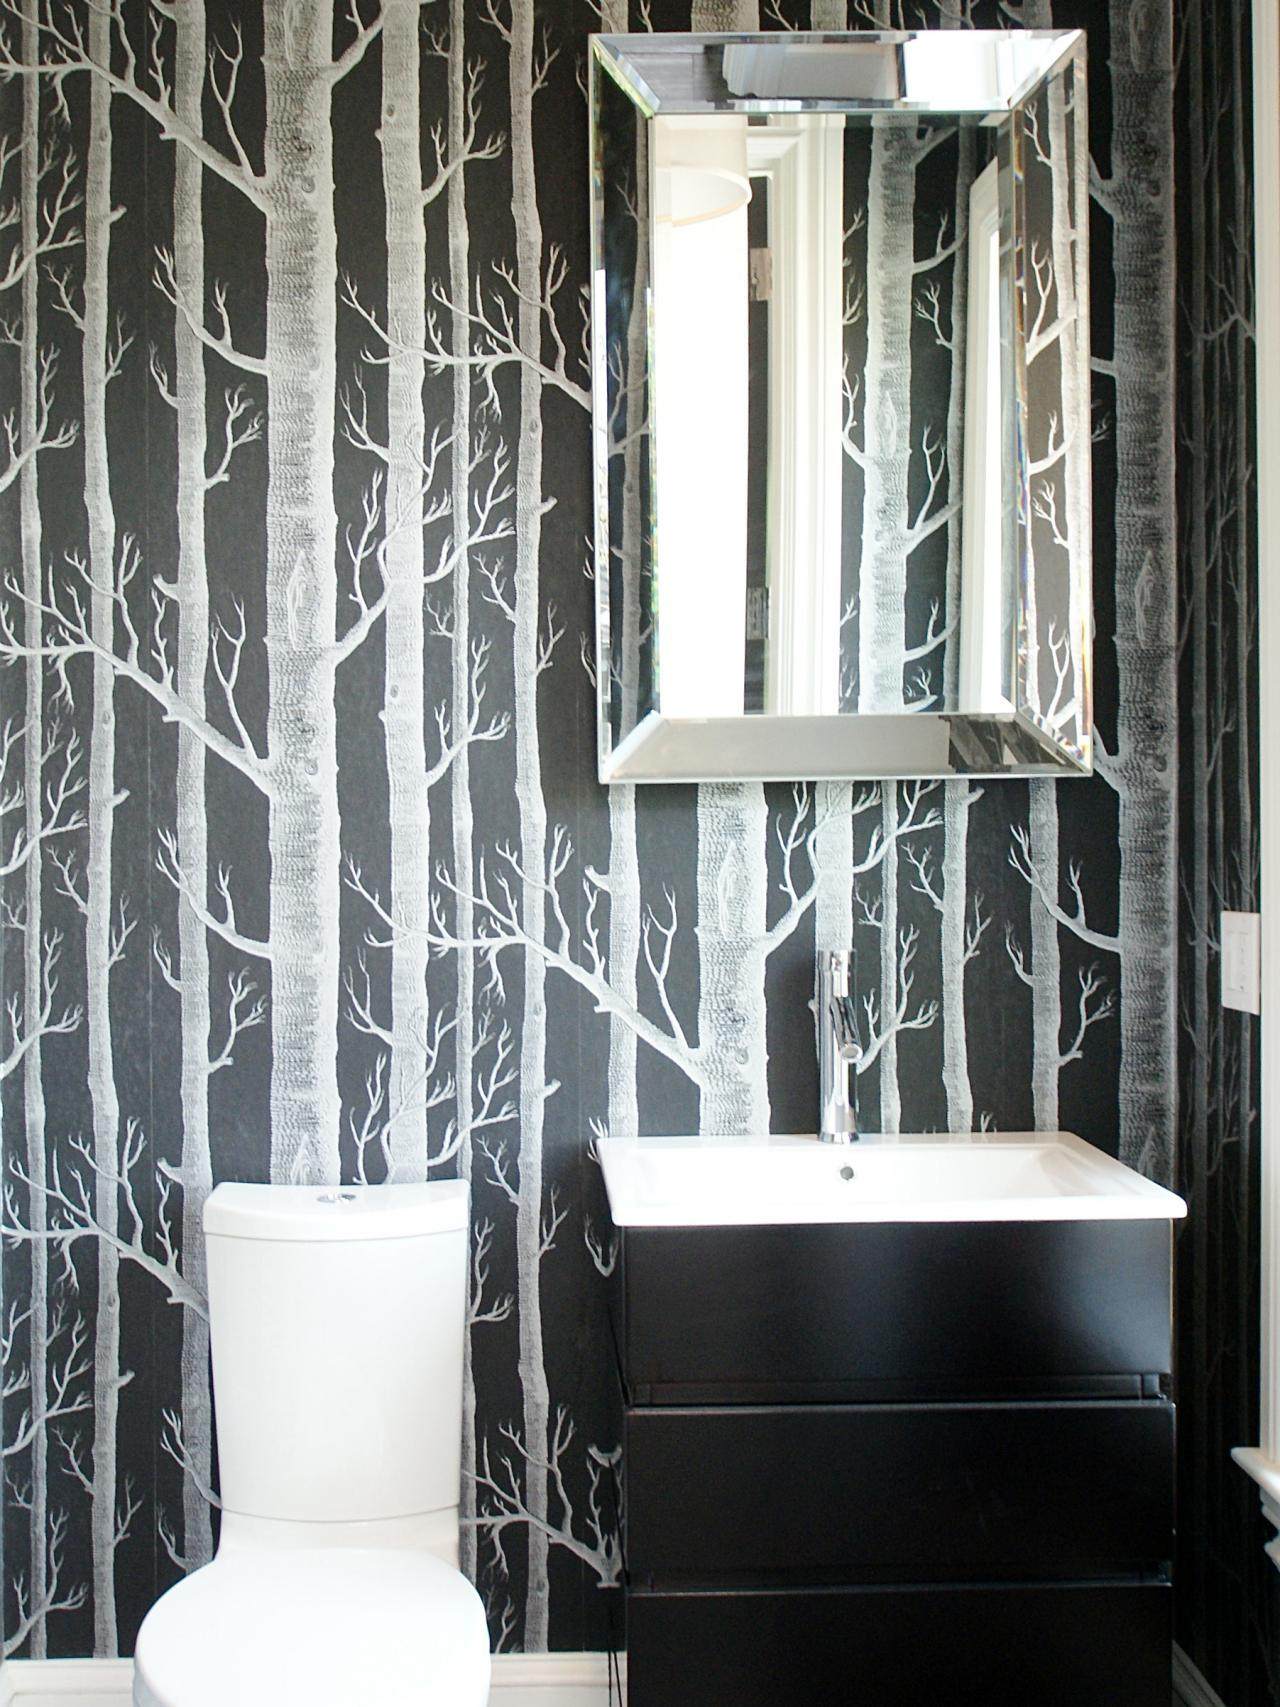 Design Ideas For Small Bathrooms inspirational decor for a small bathroom Bring On The Charm